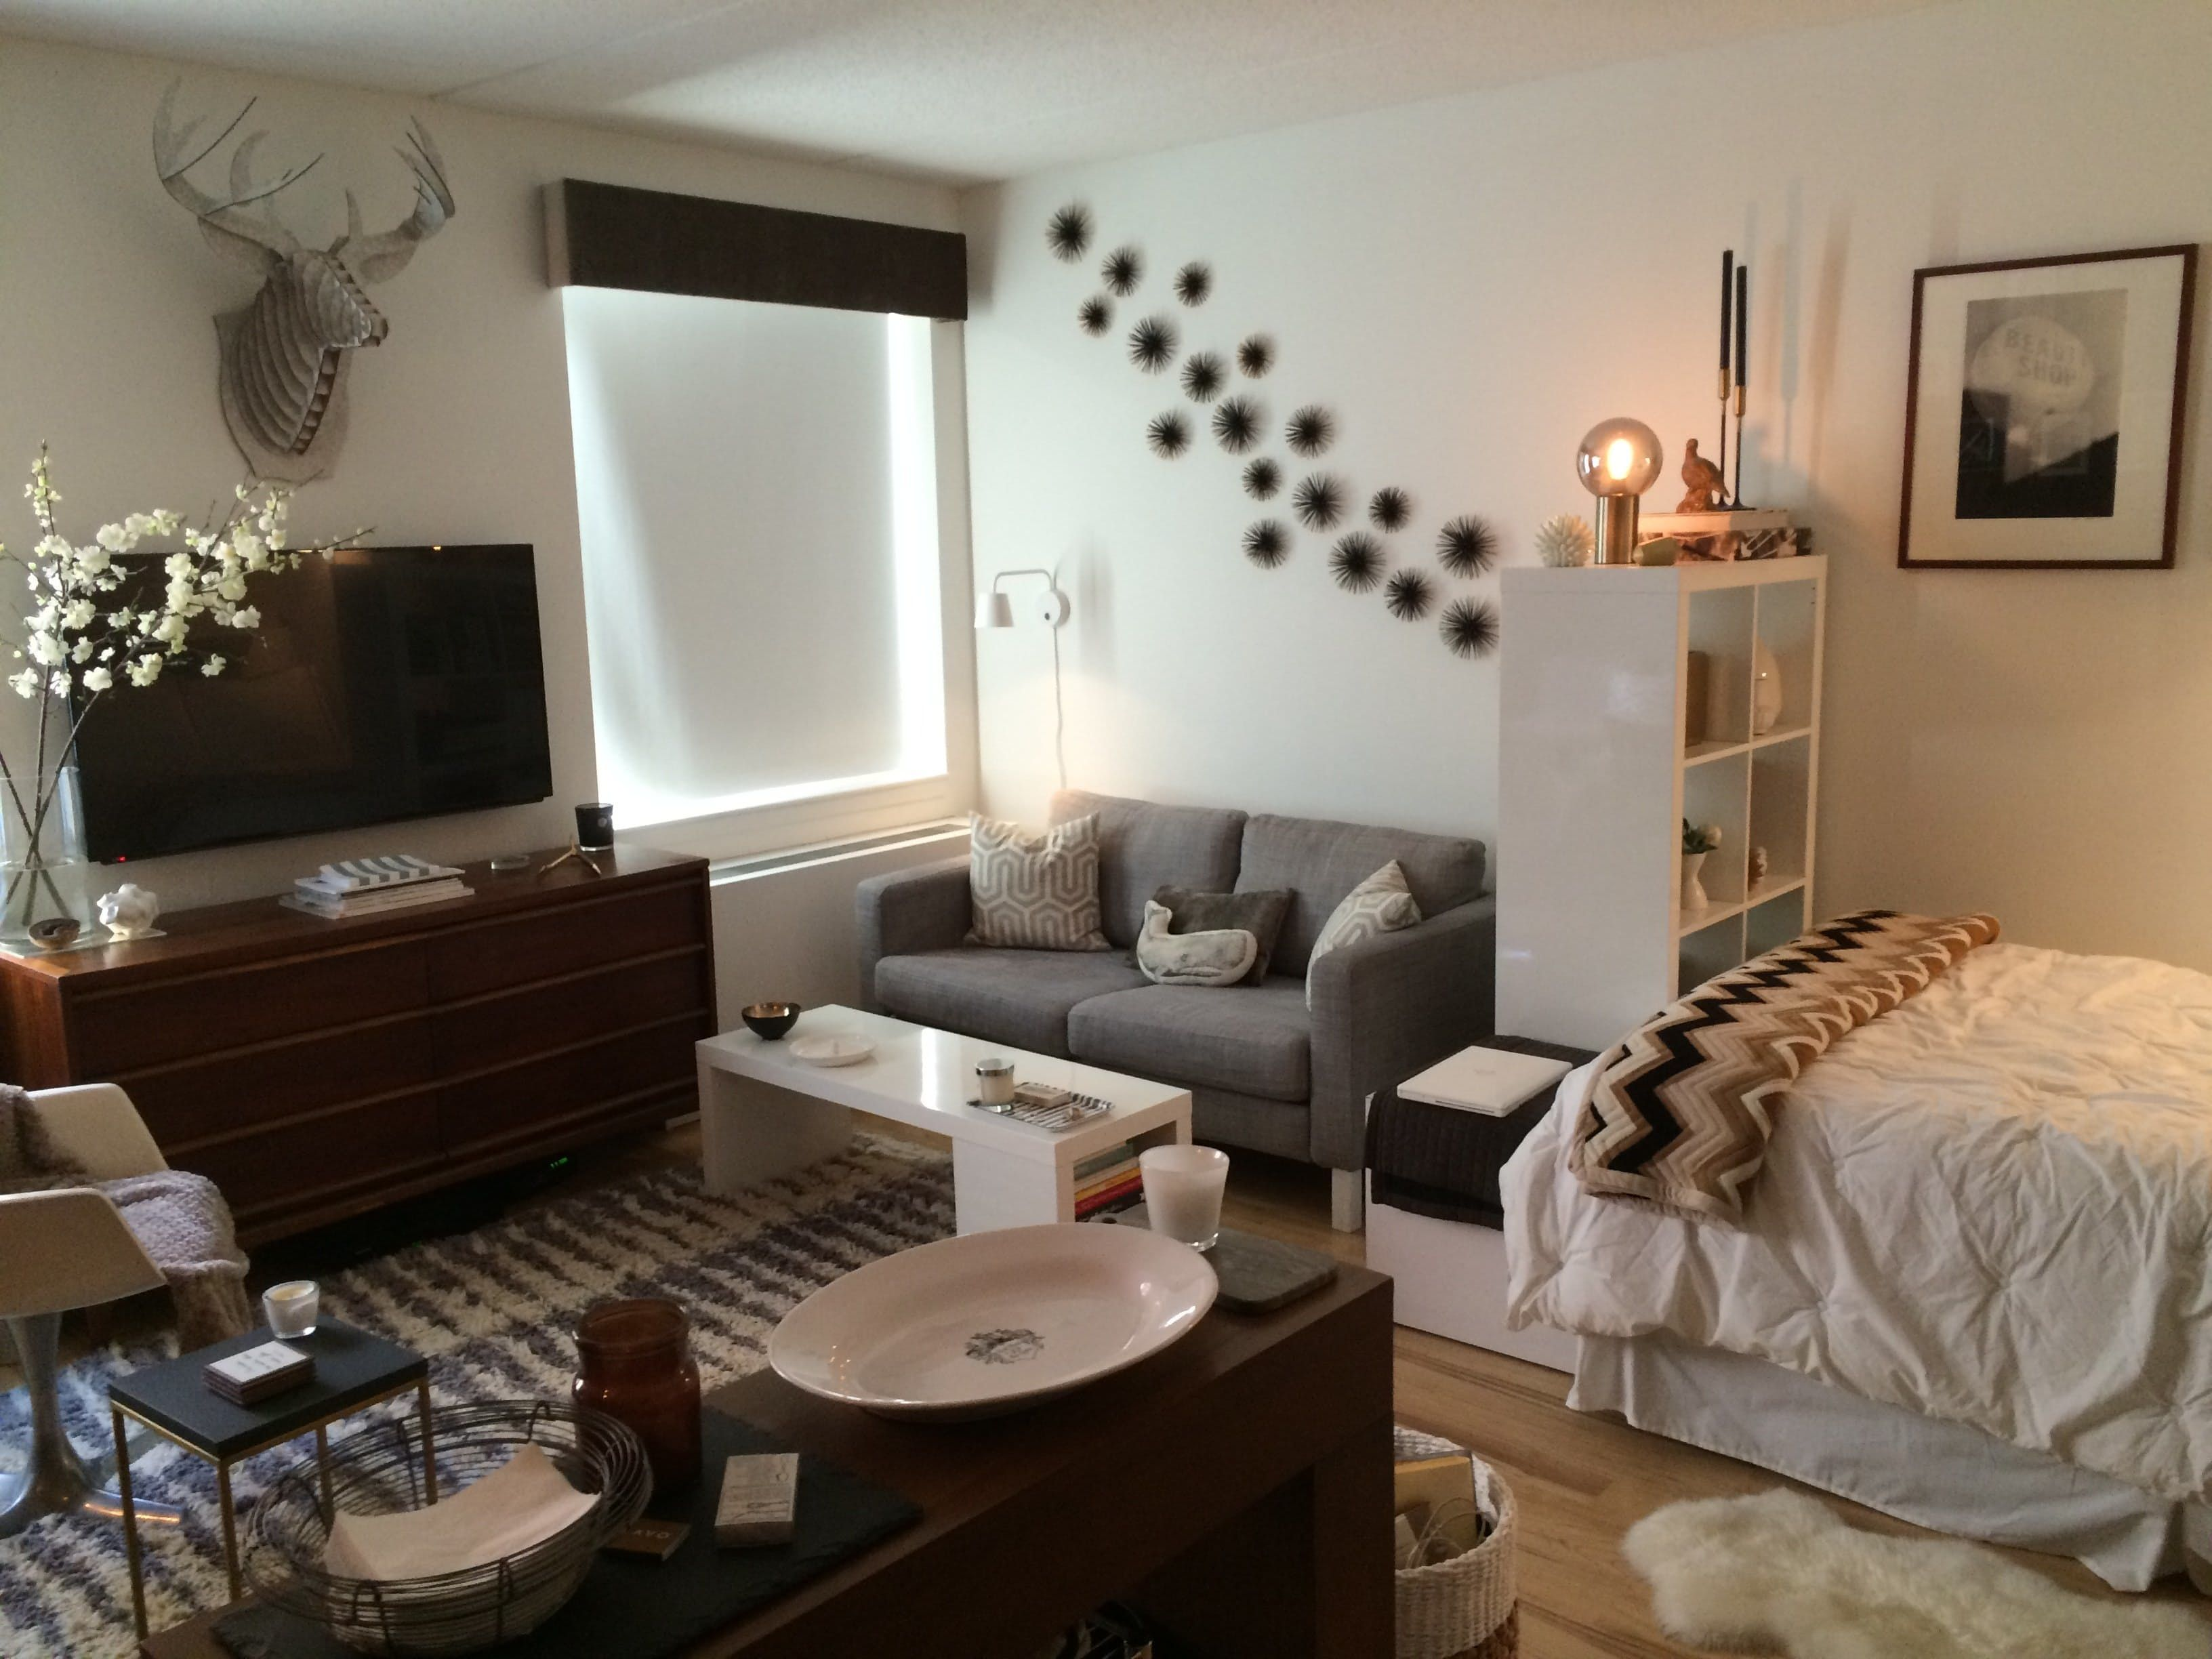 5 Studio Apartment Layouts that Work | Studio apartment layout ...